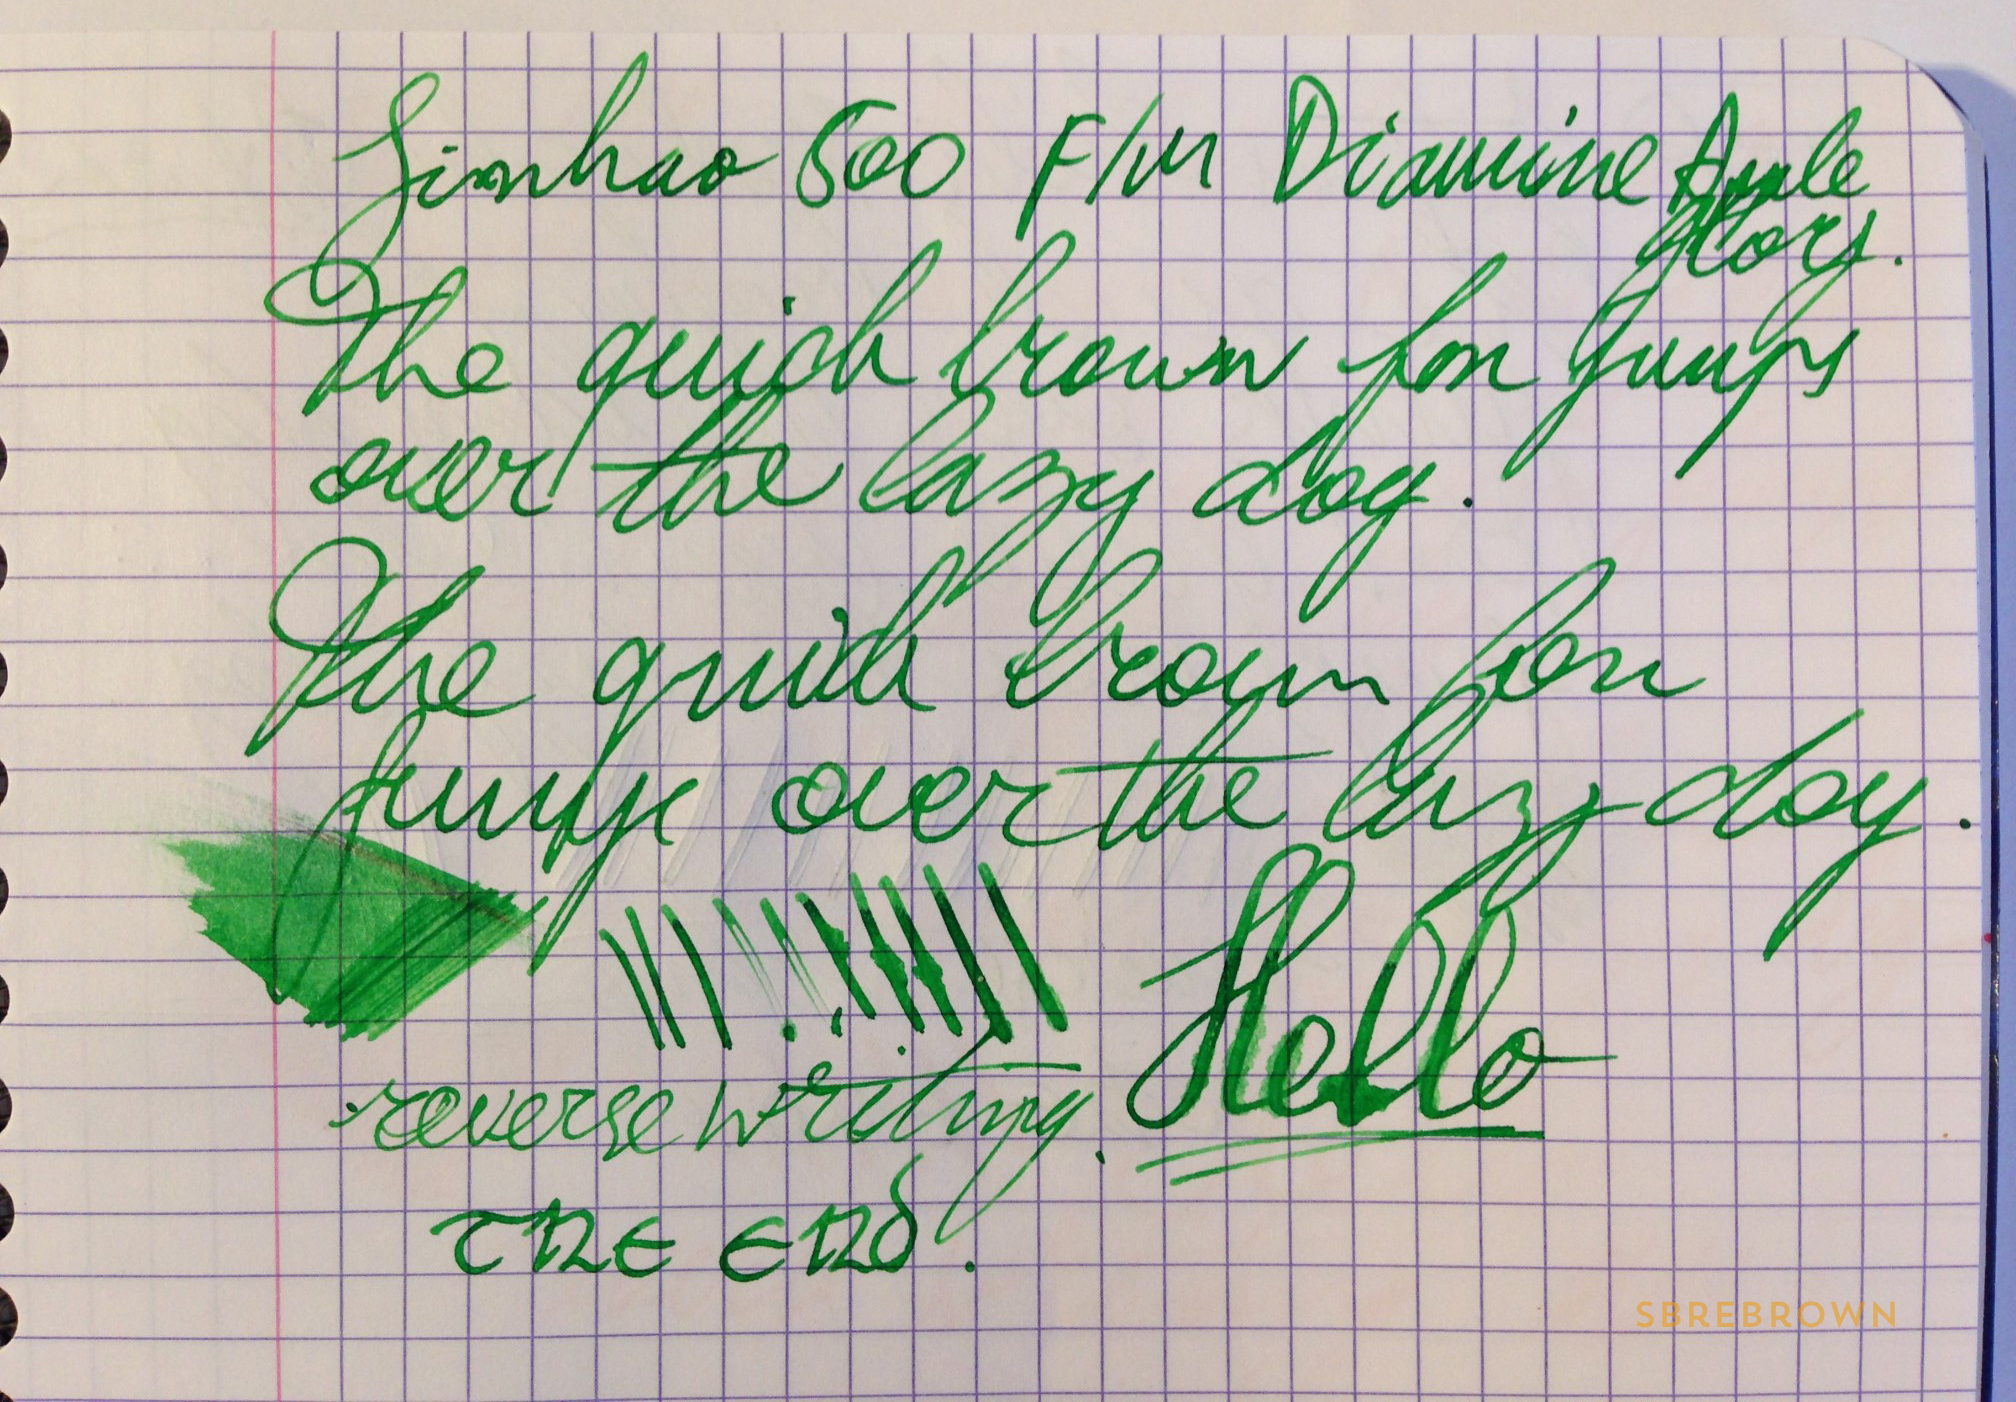 SB. Jinhao 500 Fountain Pen Review (6)